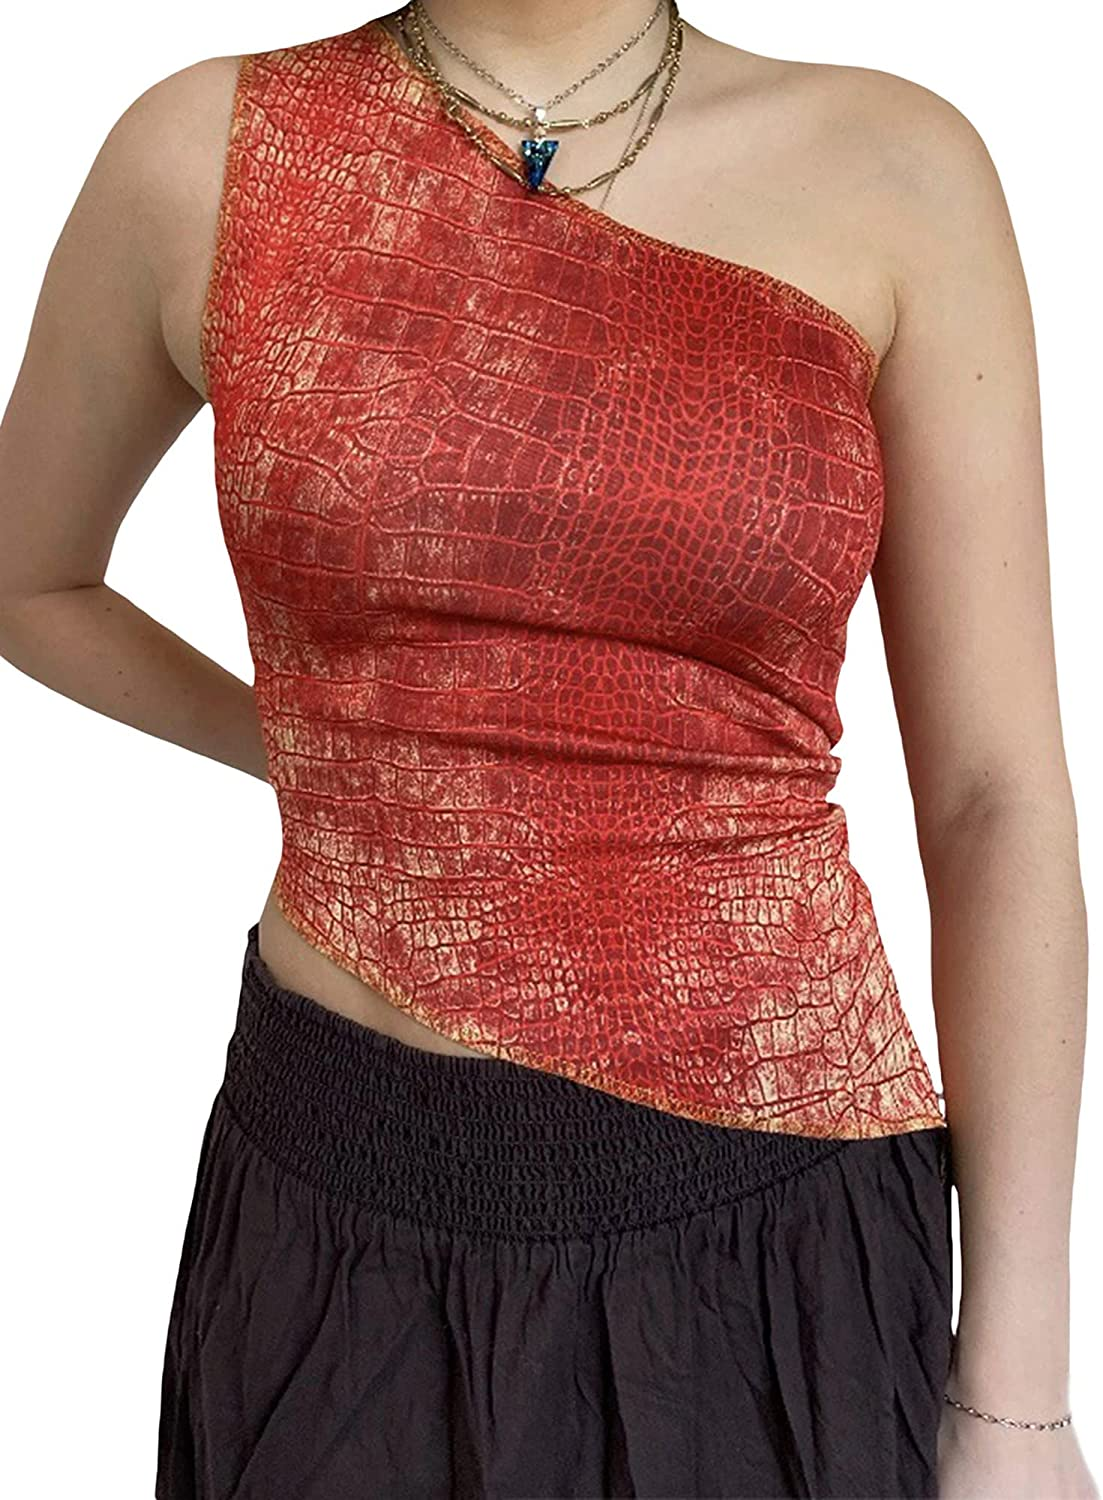 Crop Tops for Women Y2K Sexy One Shoulder Sleeveless Vest Basic Slim Bodycon Tees Fashion Exposed Navel Tops (Red Crocodile Pattern, Medium)